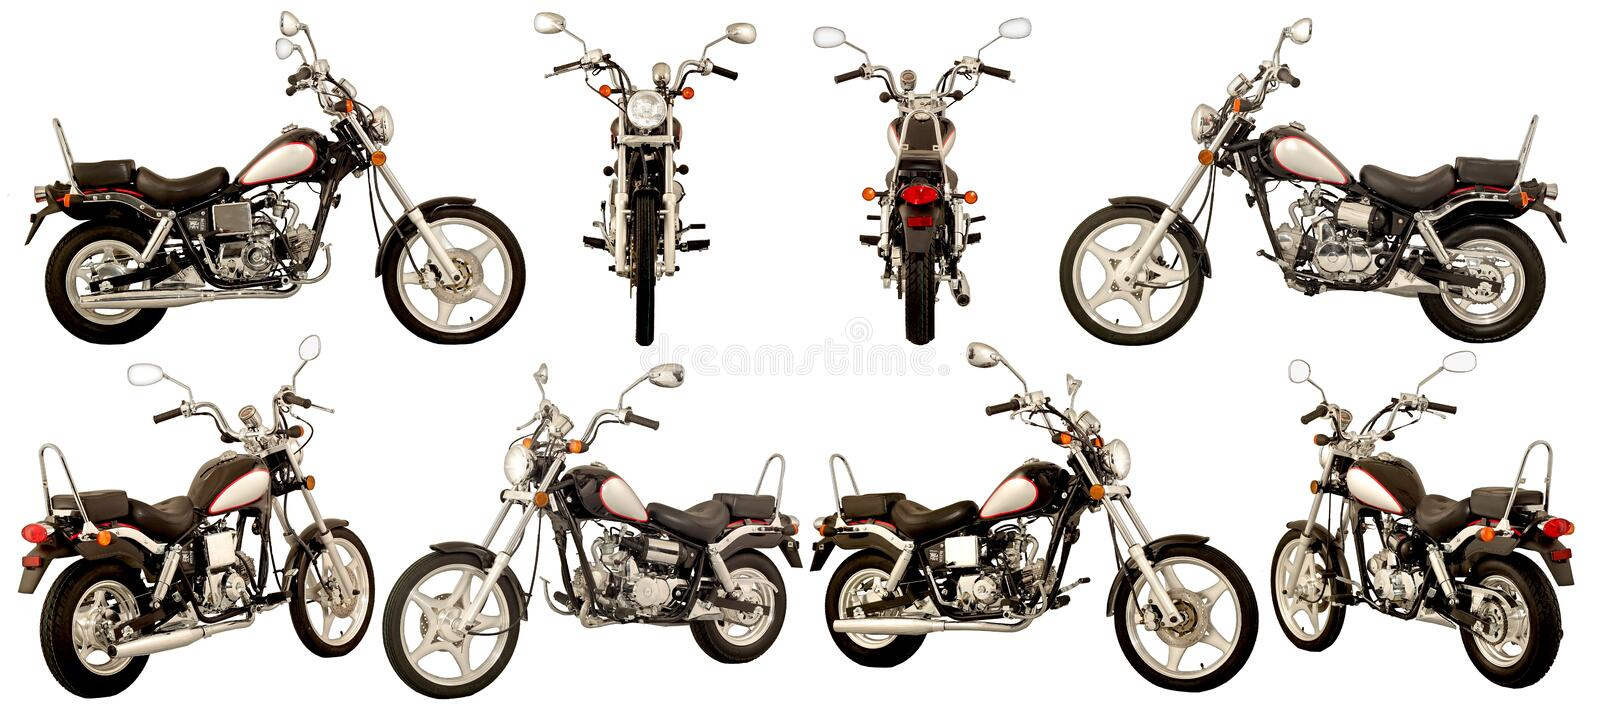 Scooters and motorcycles stock photo